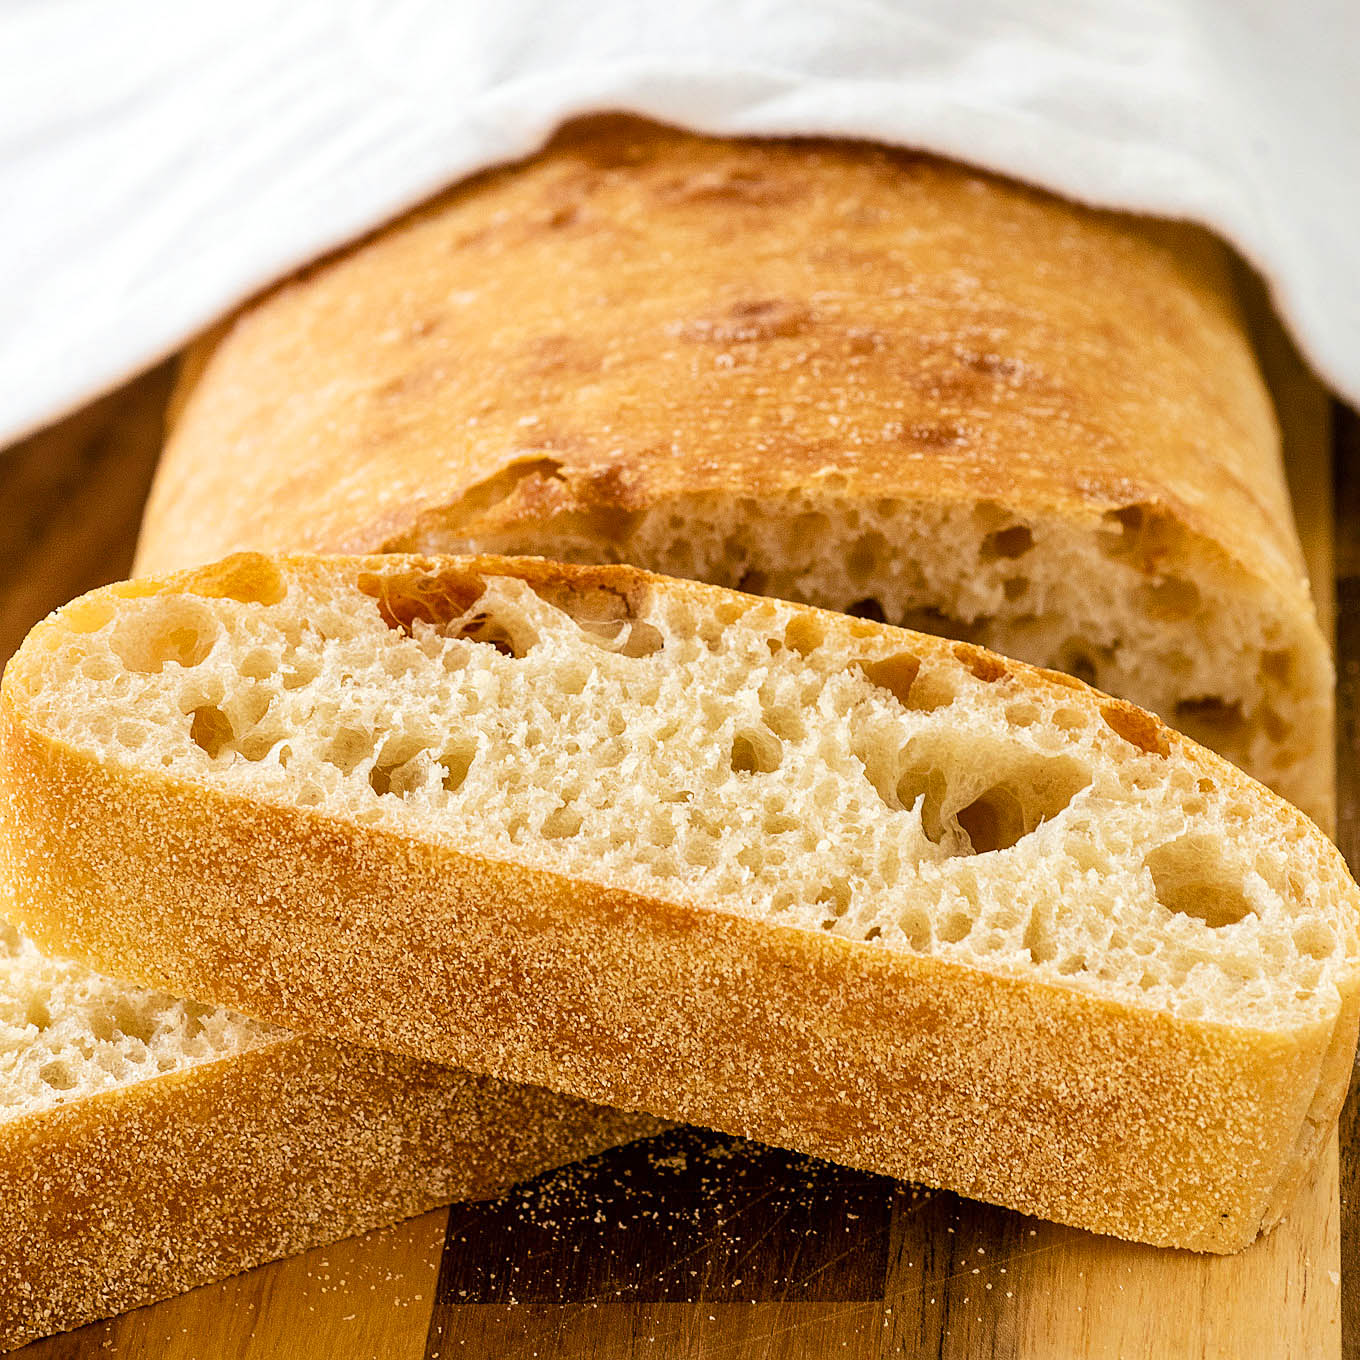 A cut loaf of ciabatta bread with two slices piled in front